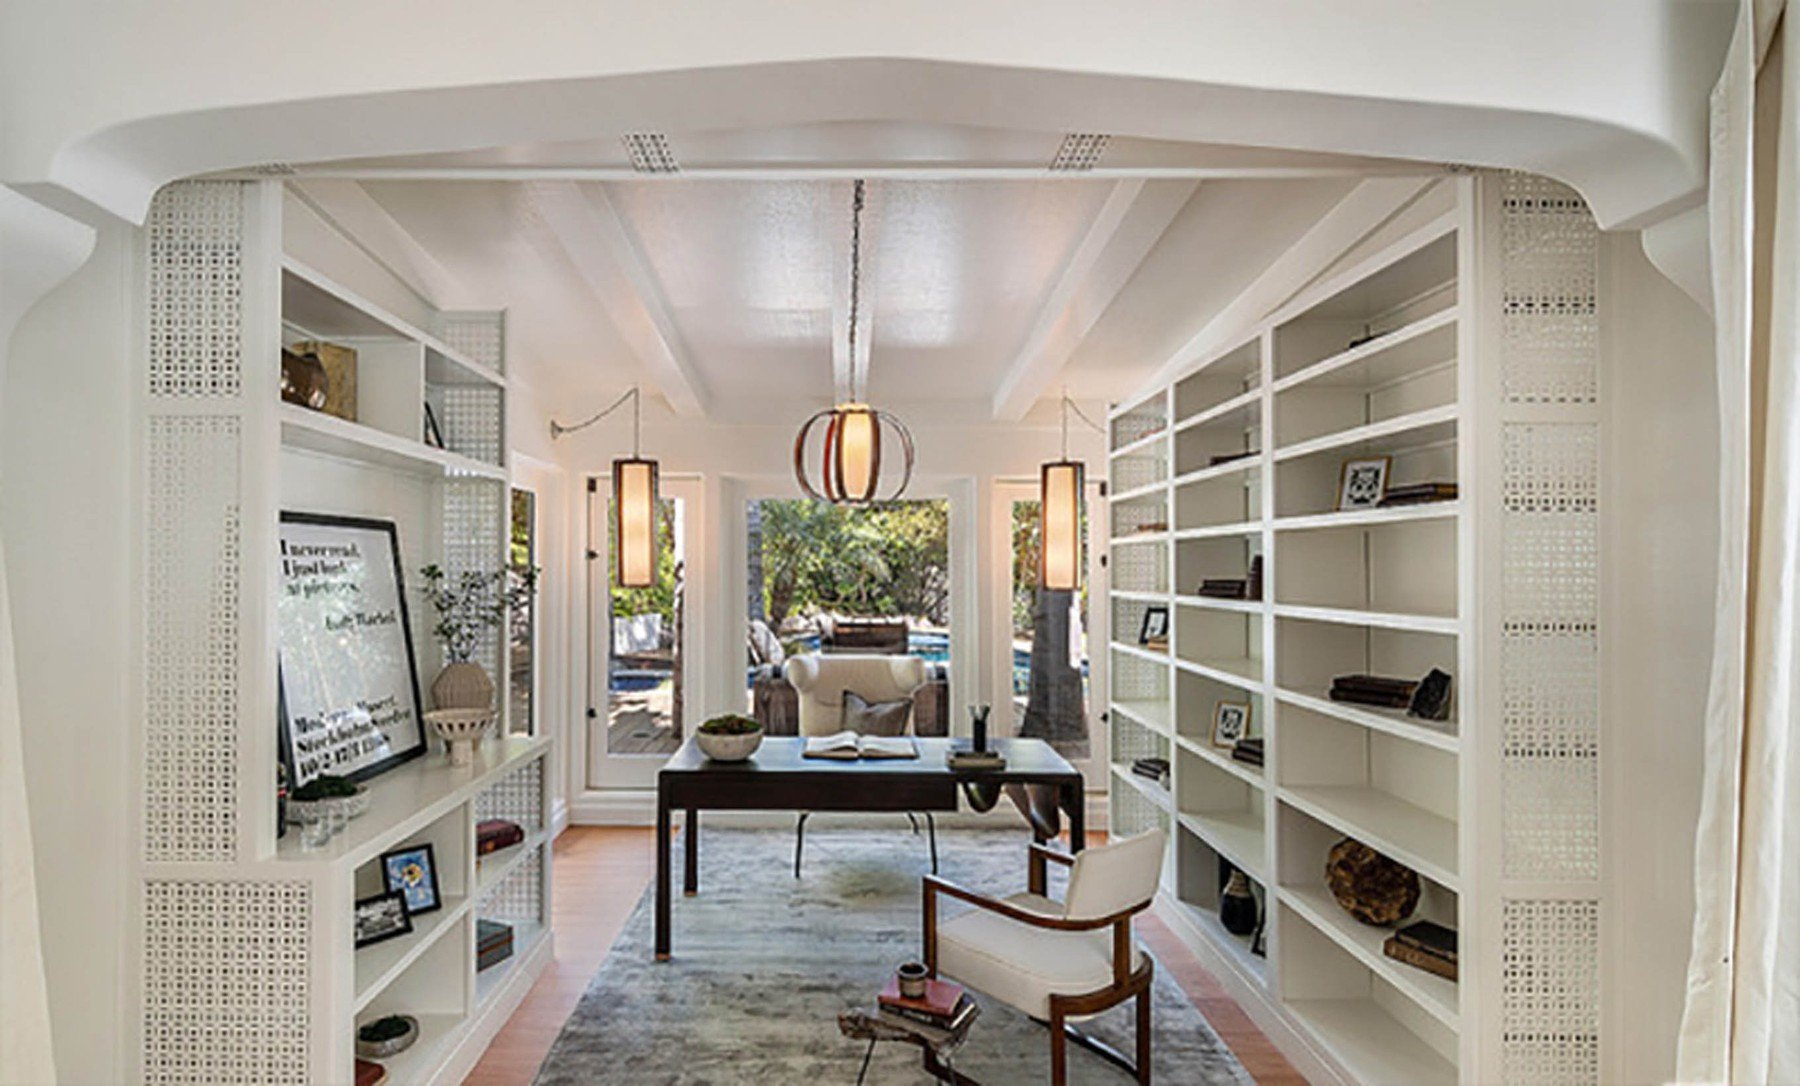 2-4-2019  Jessica Alba is looking to sell her home in Beverly Hills, Los Angeles for .195 million having recently purchased a larger house. With 5,300 square feet of living space, there are 5 bedrooms and 7 bathrooms. Built in the mid-1970s, the house sits on almost half of an acre of land behind large security gates.  Pictured: Jessica Alba's house, Image: 423689992, License: Rights-managed, Restrictions: , Model Release: no, Credit line: Profimedia, Planet